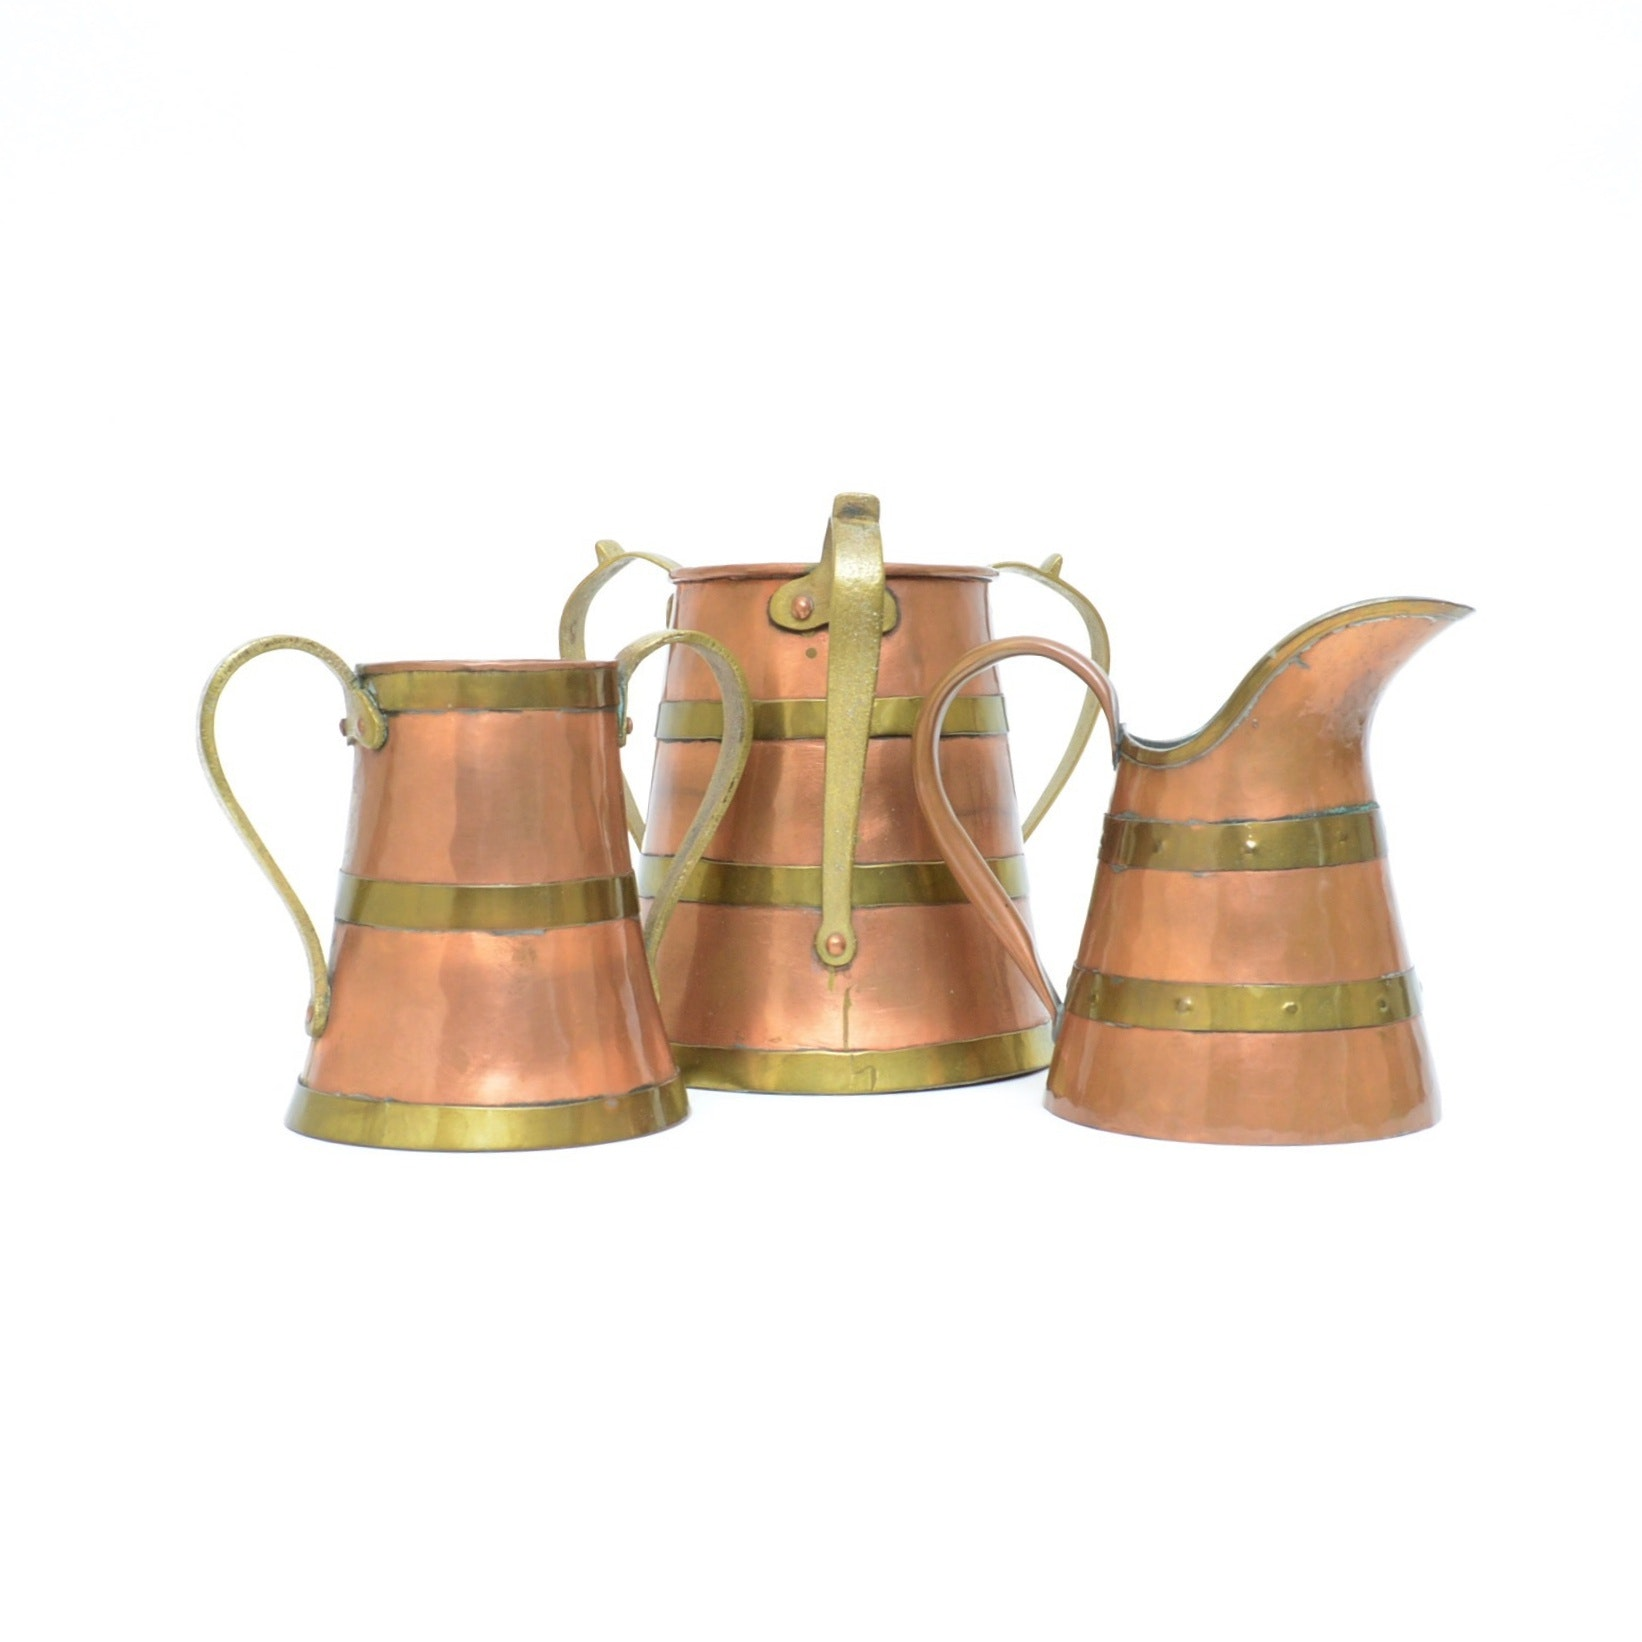 Arts and Crafts Copper and Brass Loving Cups and Ewer